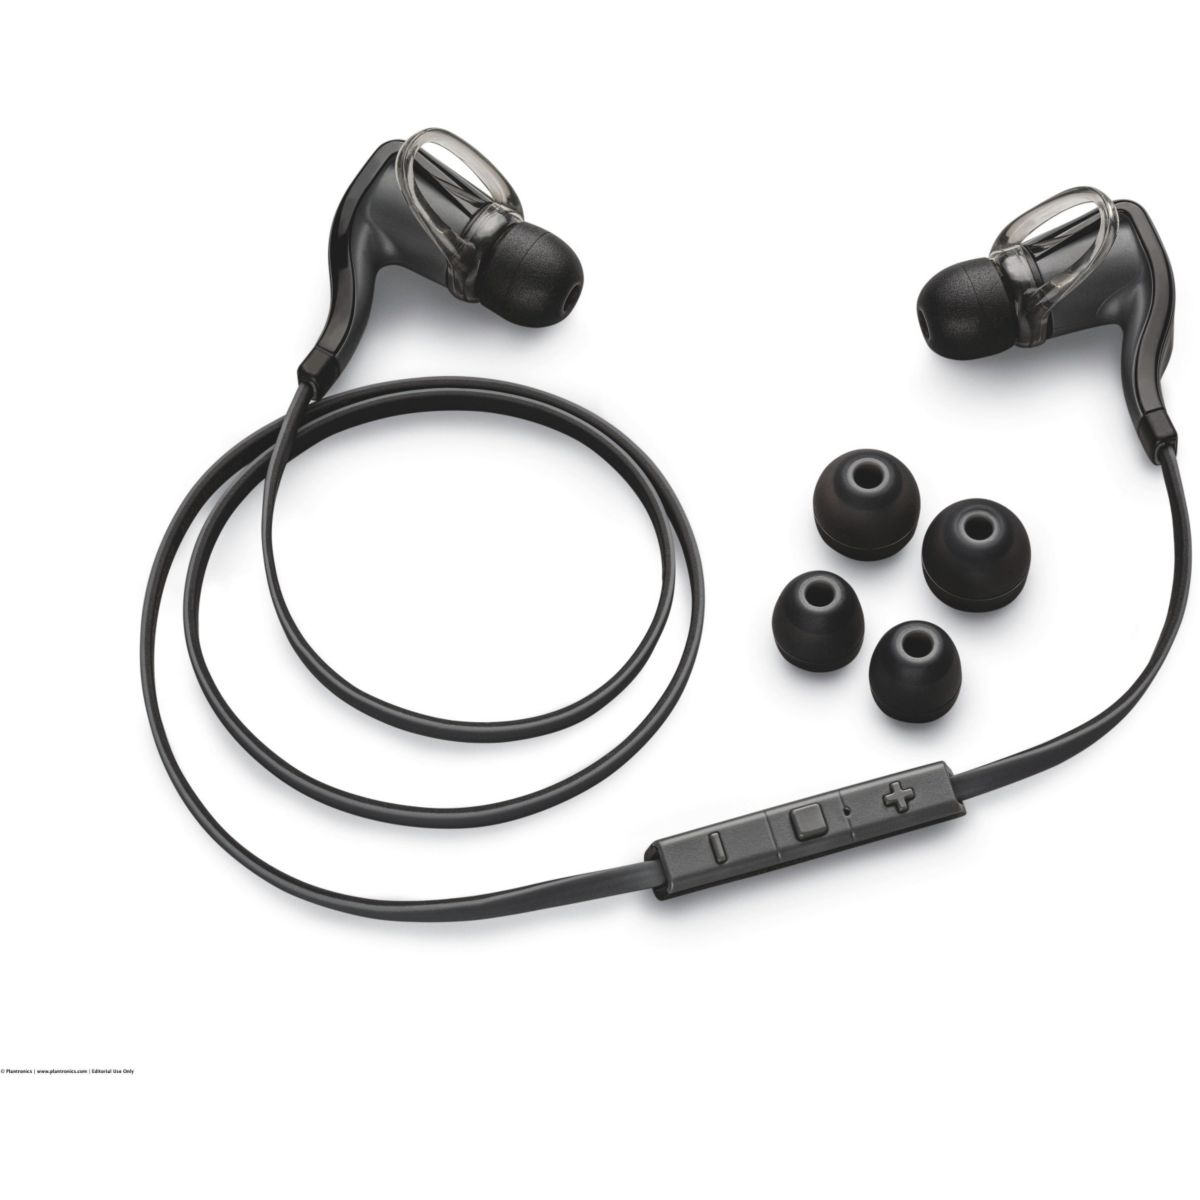 Casque sport plantronics backbeat go 2 black + charging case - 2% de remise imm�diate avec le code : noel2 (photo)